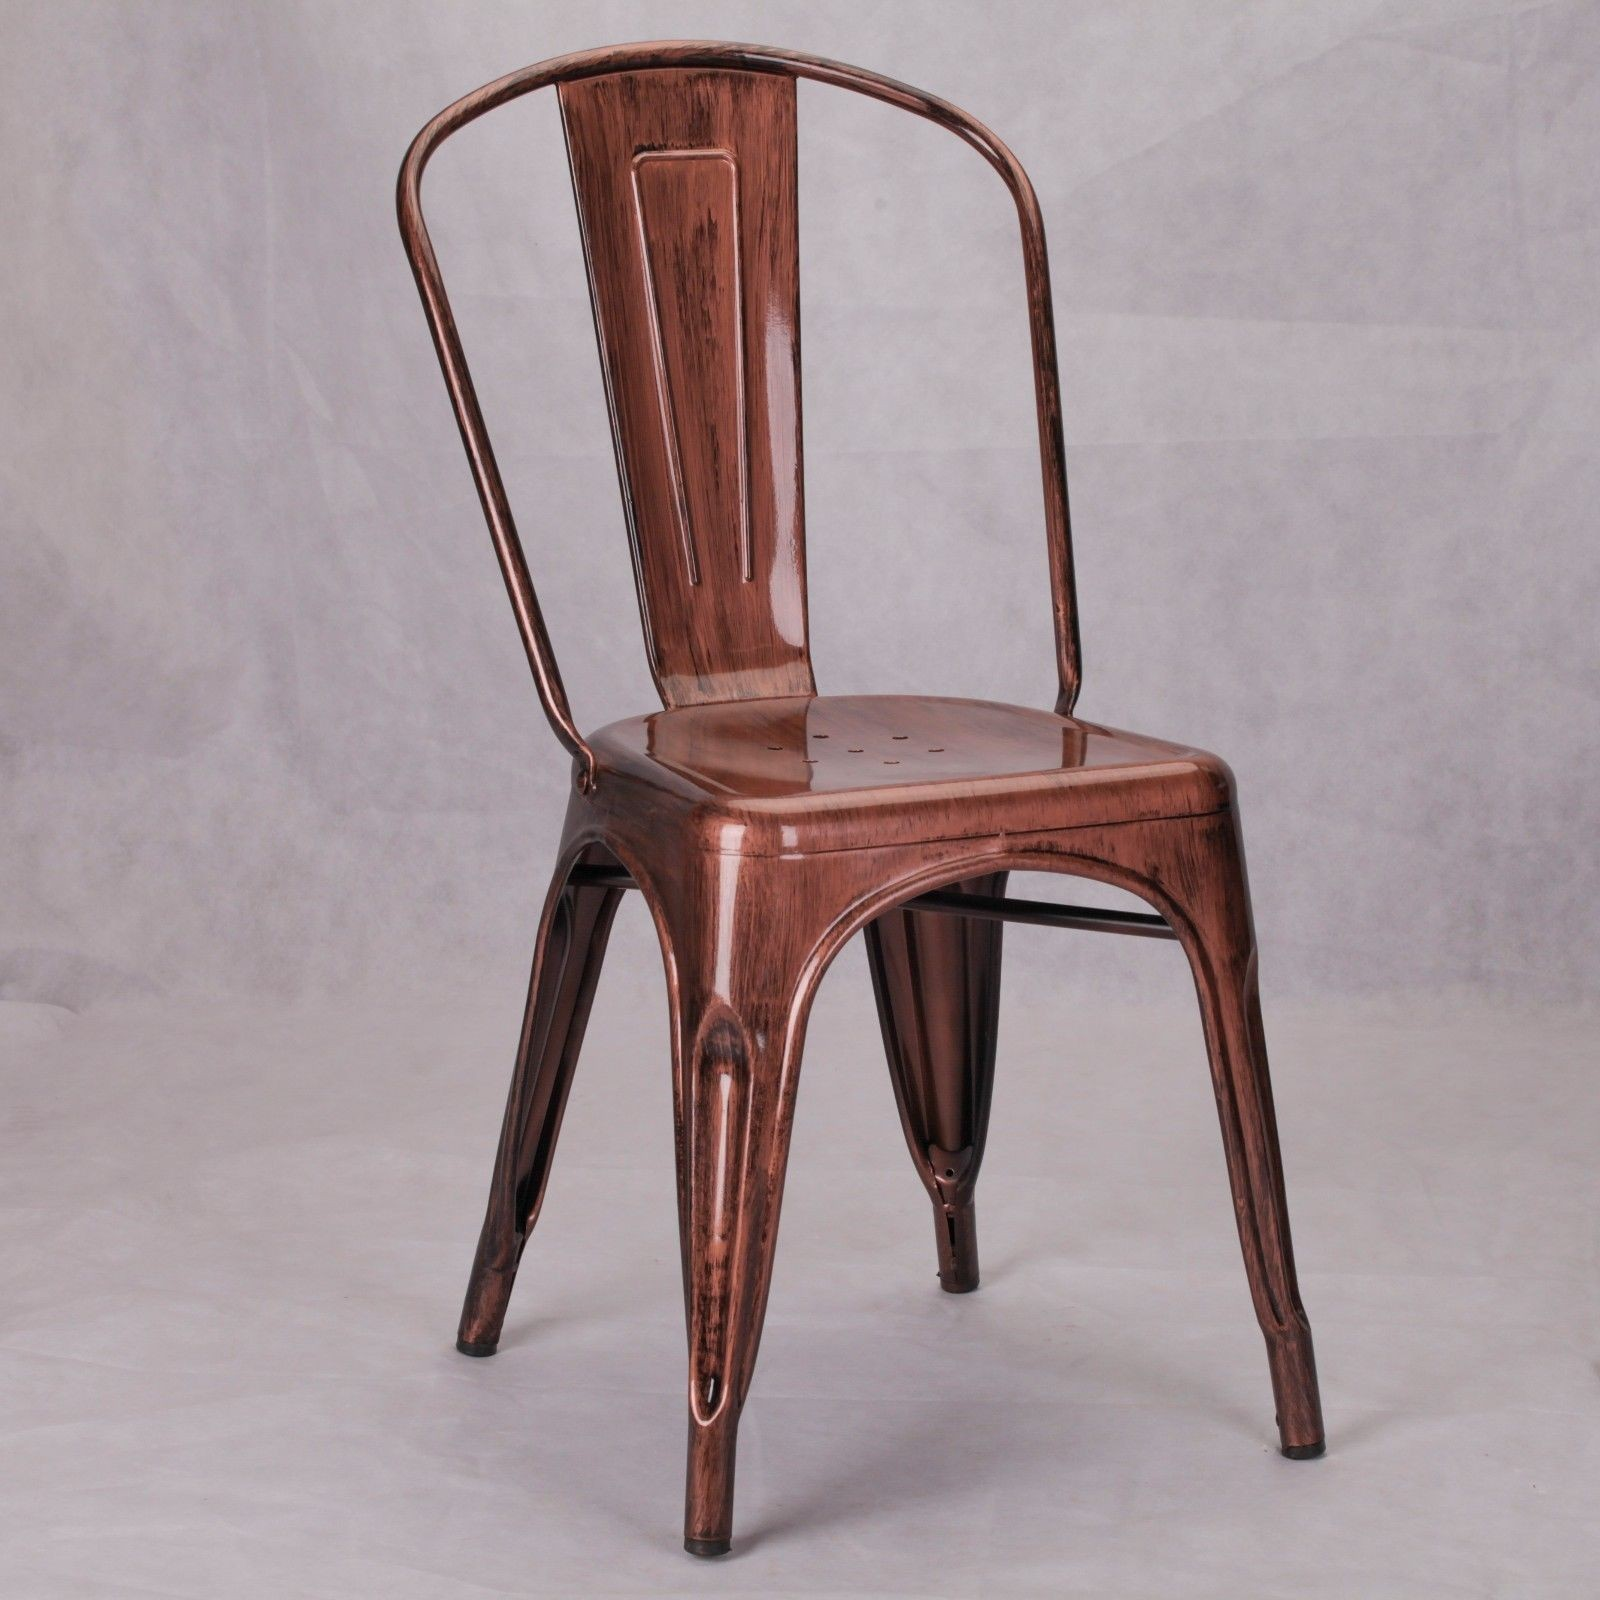 Metal Chairs Vintage Tolix Style Metal Copper Bronze Industrial Cafe Dining Chair